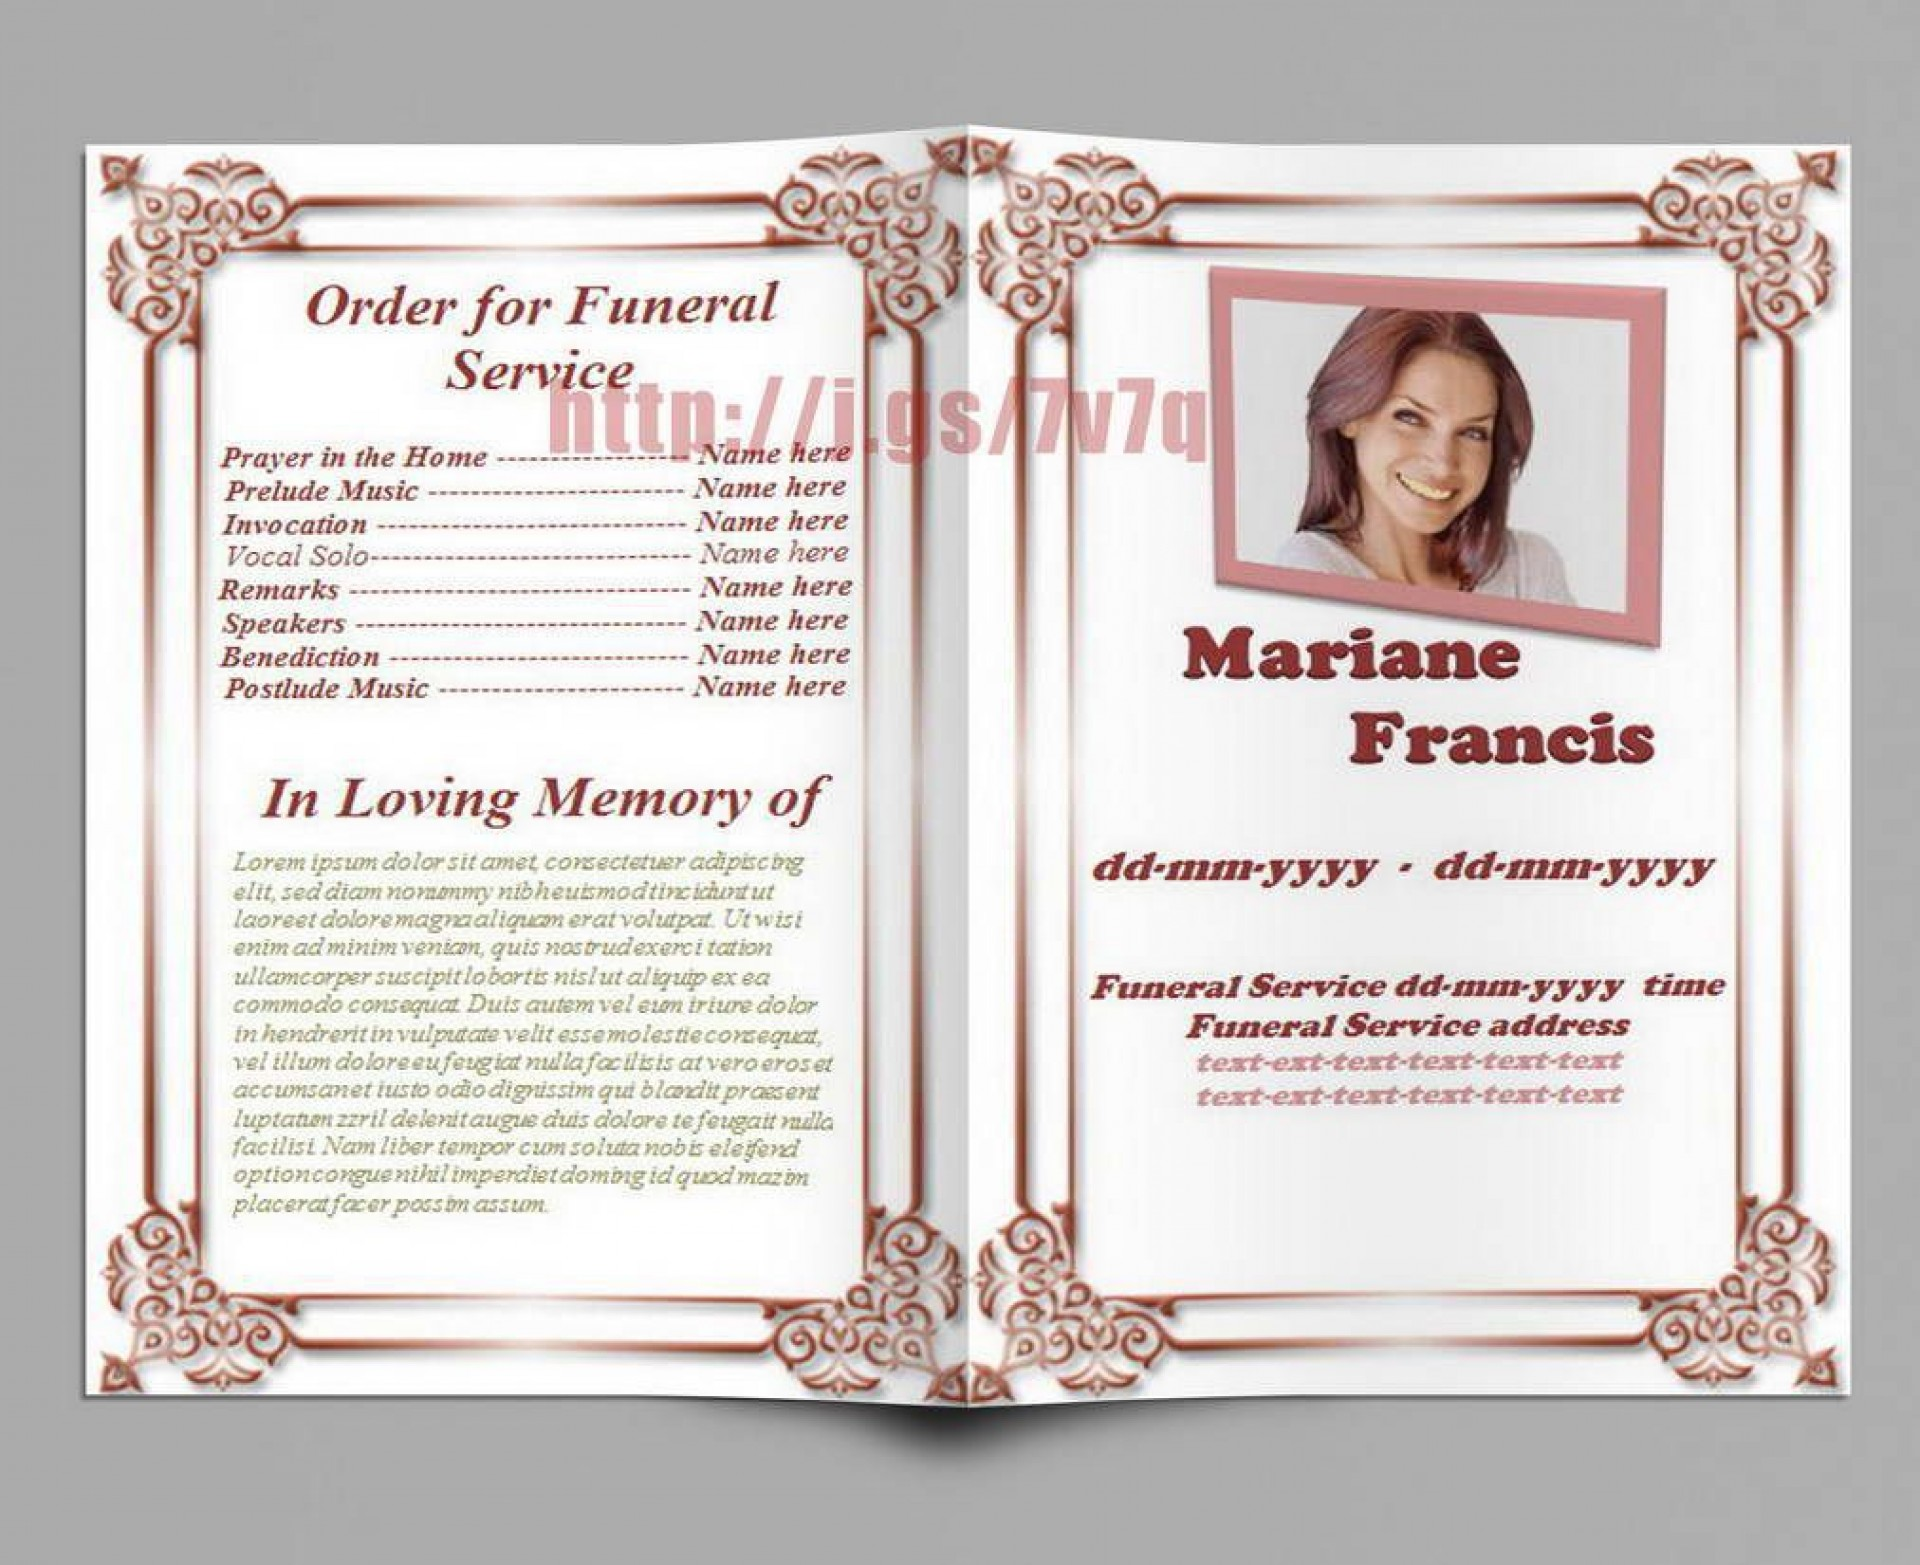 002 Impressive Example Funeral Programme Photo  Format Of Program Template Free To Download1920